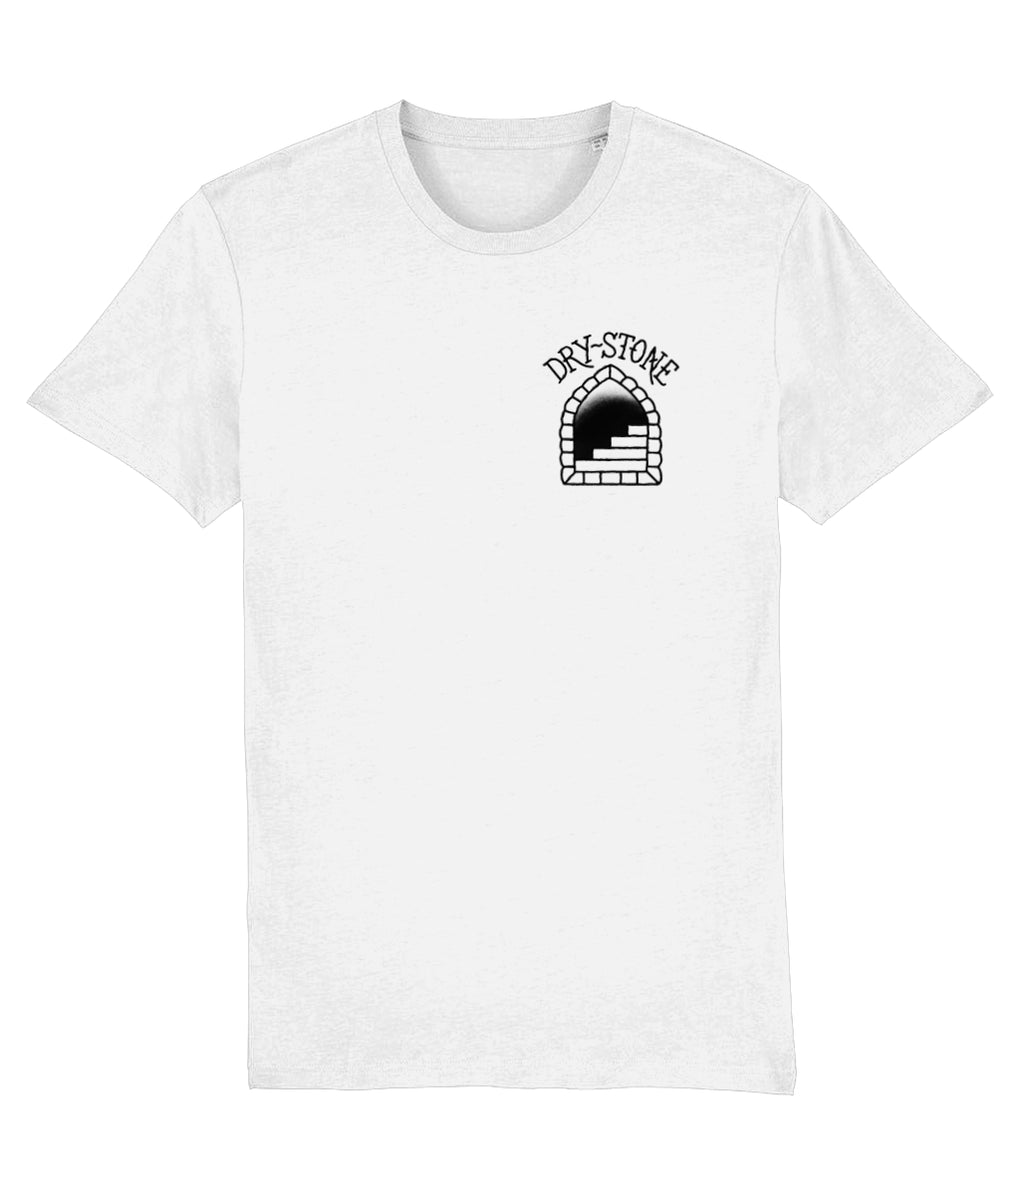 tattoo inspired T-shirt XS Paradise Lost - White Tee